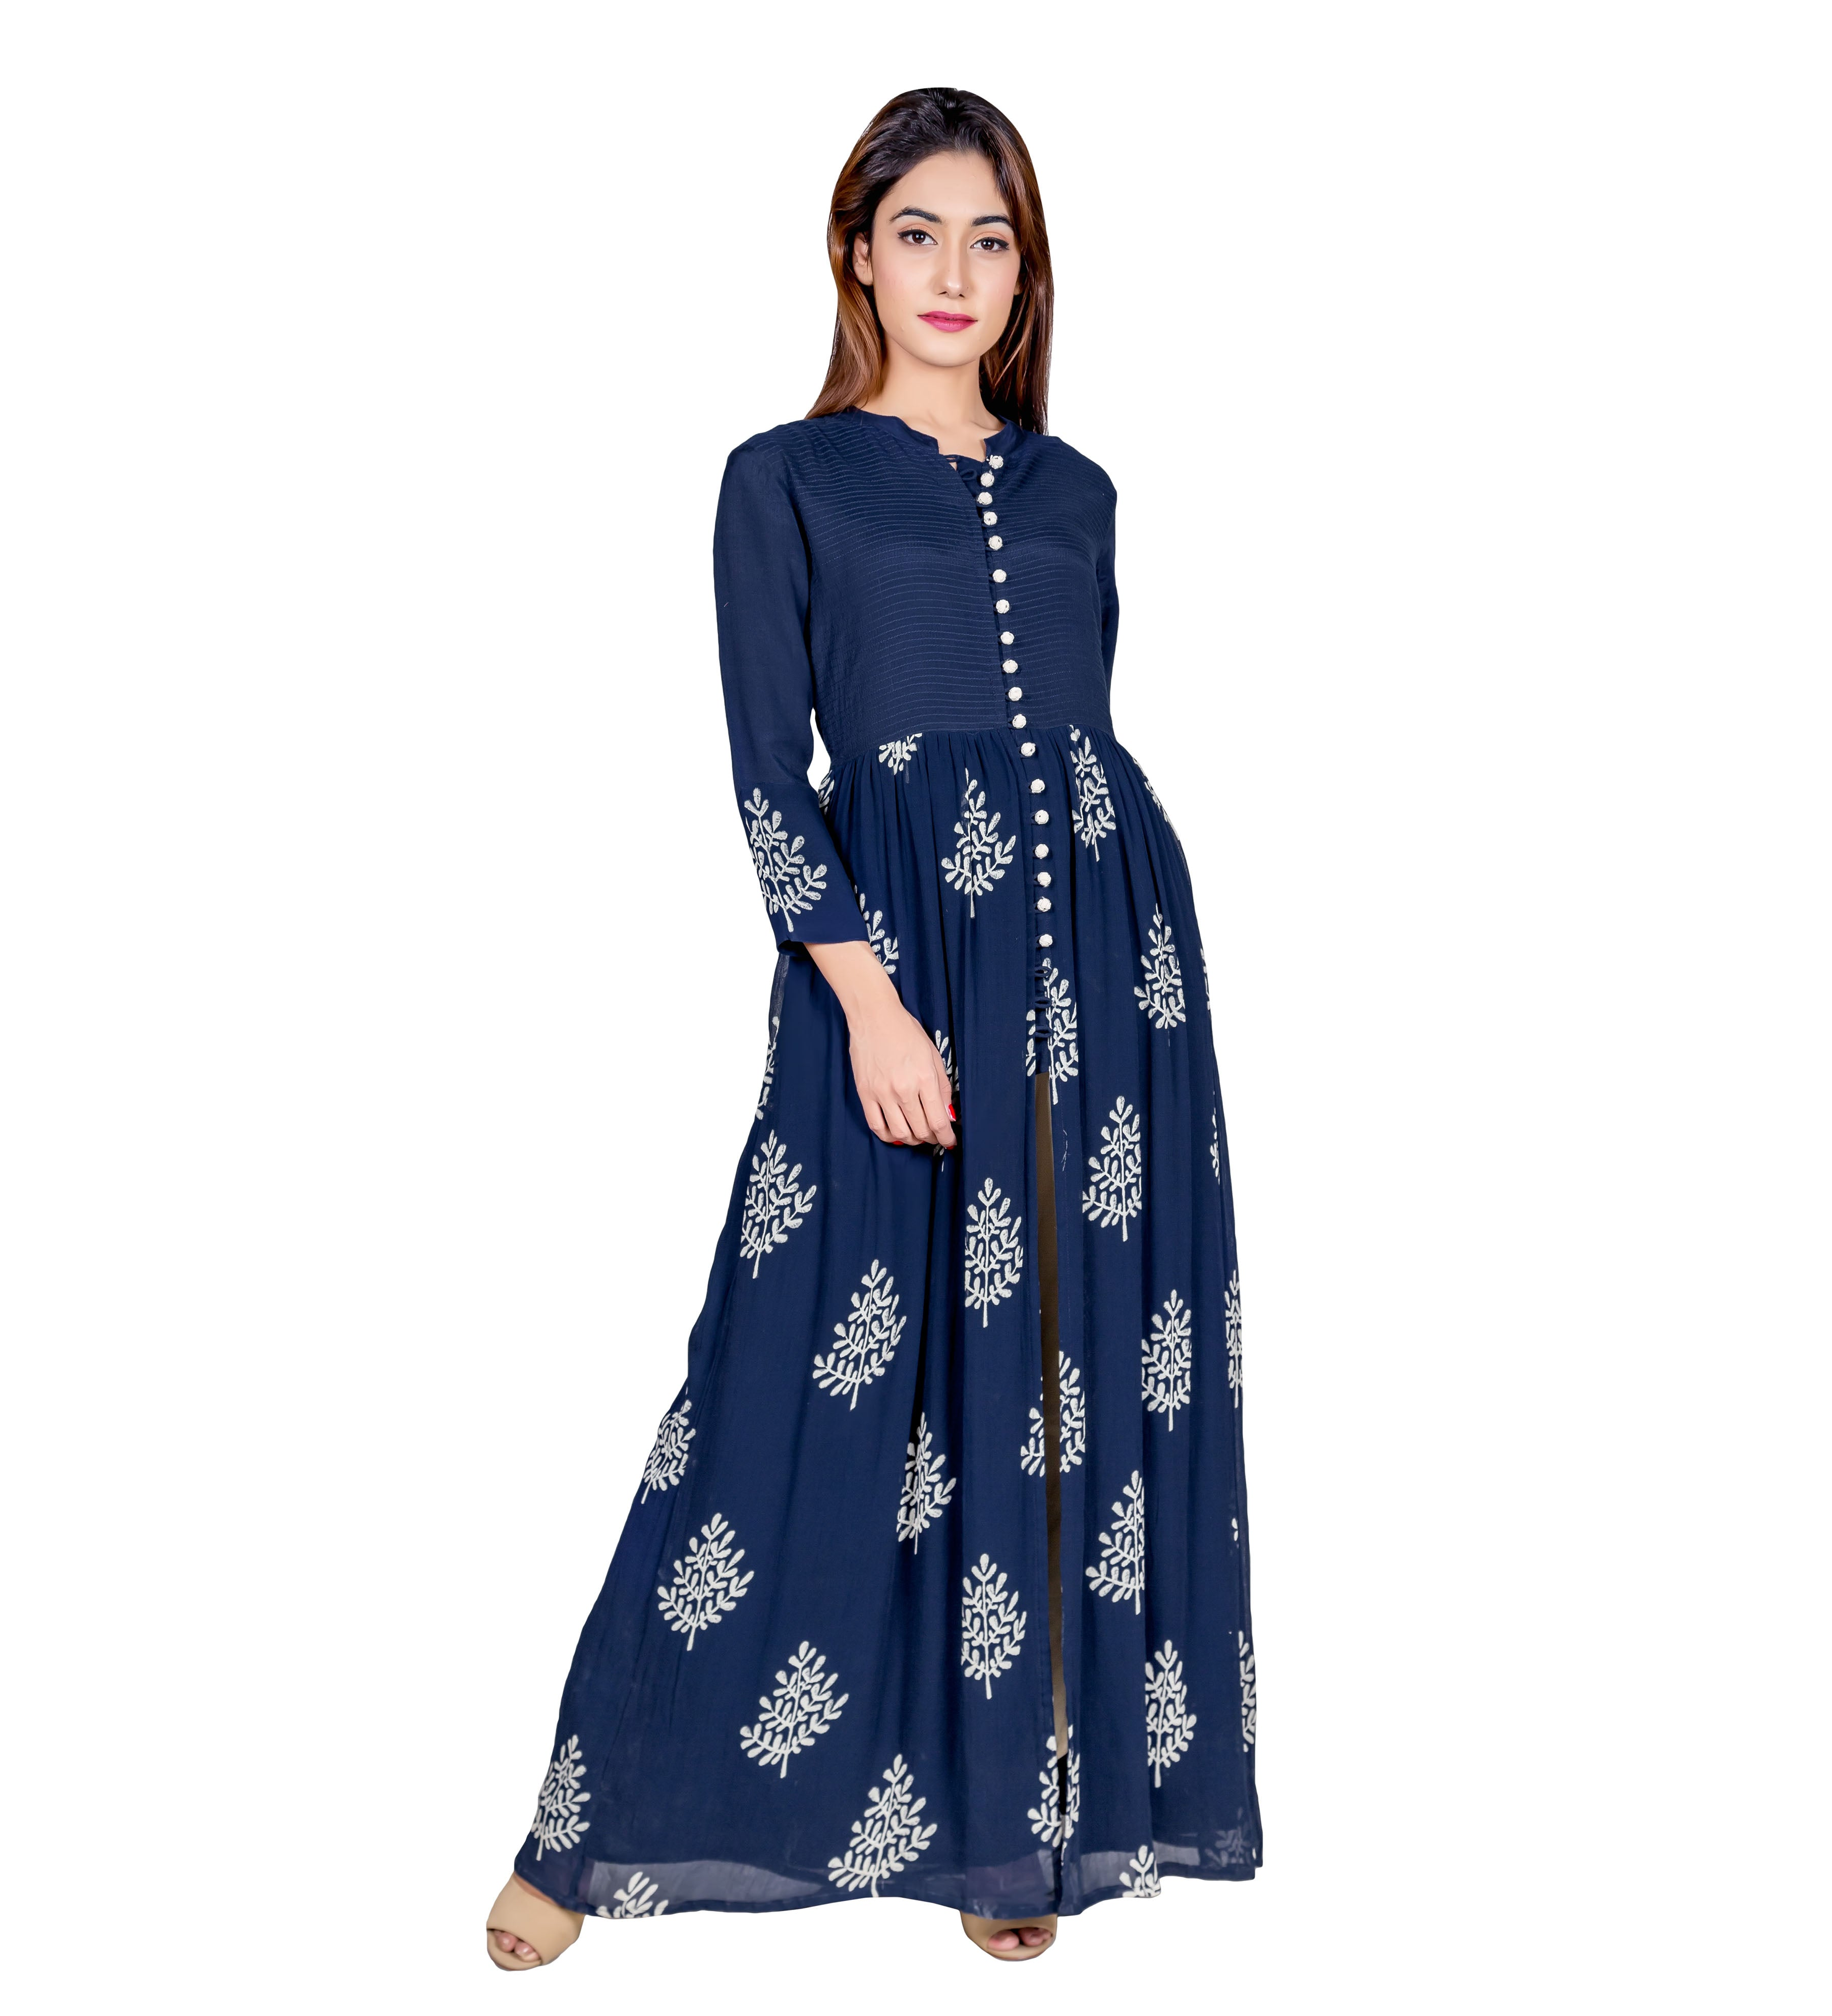 Navy Blue Hand Block Printed and Embroidered Cape Kurta Dress with Pants